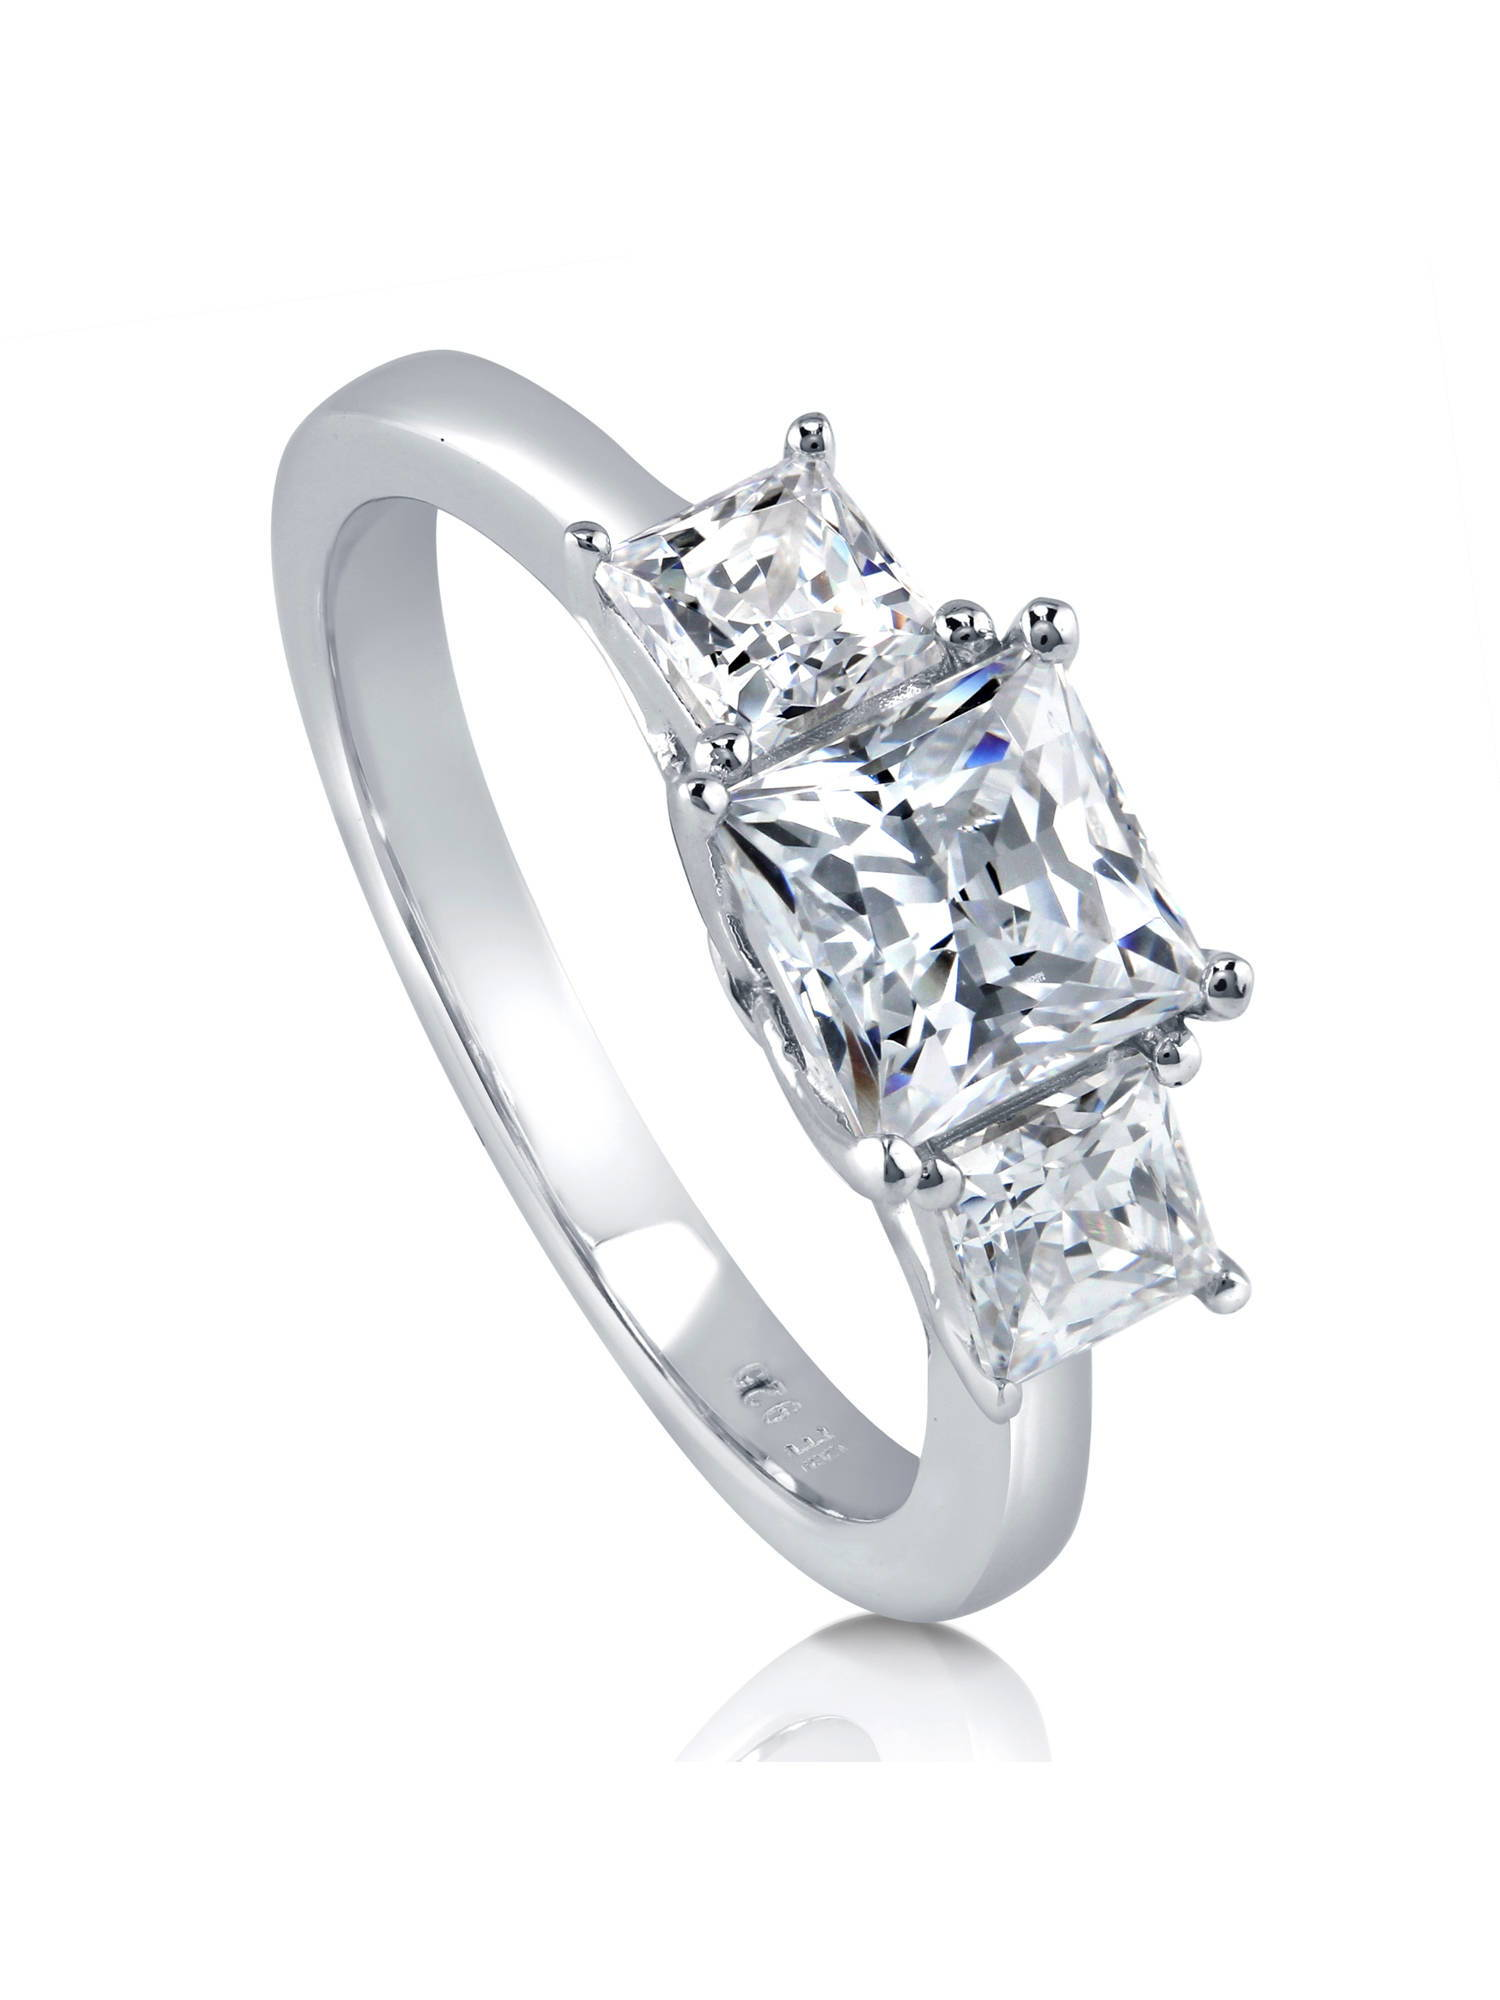 Rhodium Plated Sterling Silver 3-Stone Promise Ring Made with Swarovski Zirconia Size 10.5